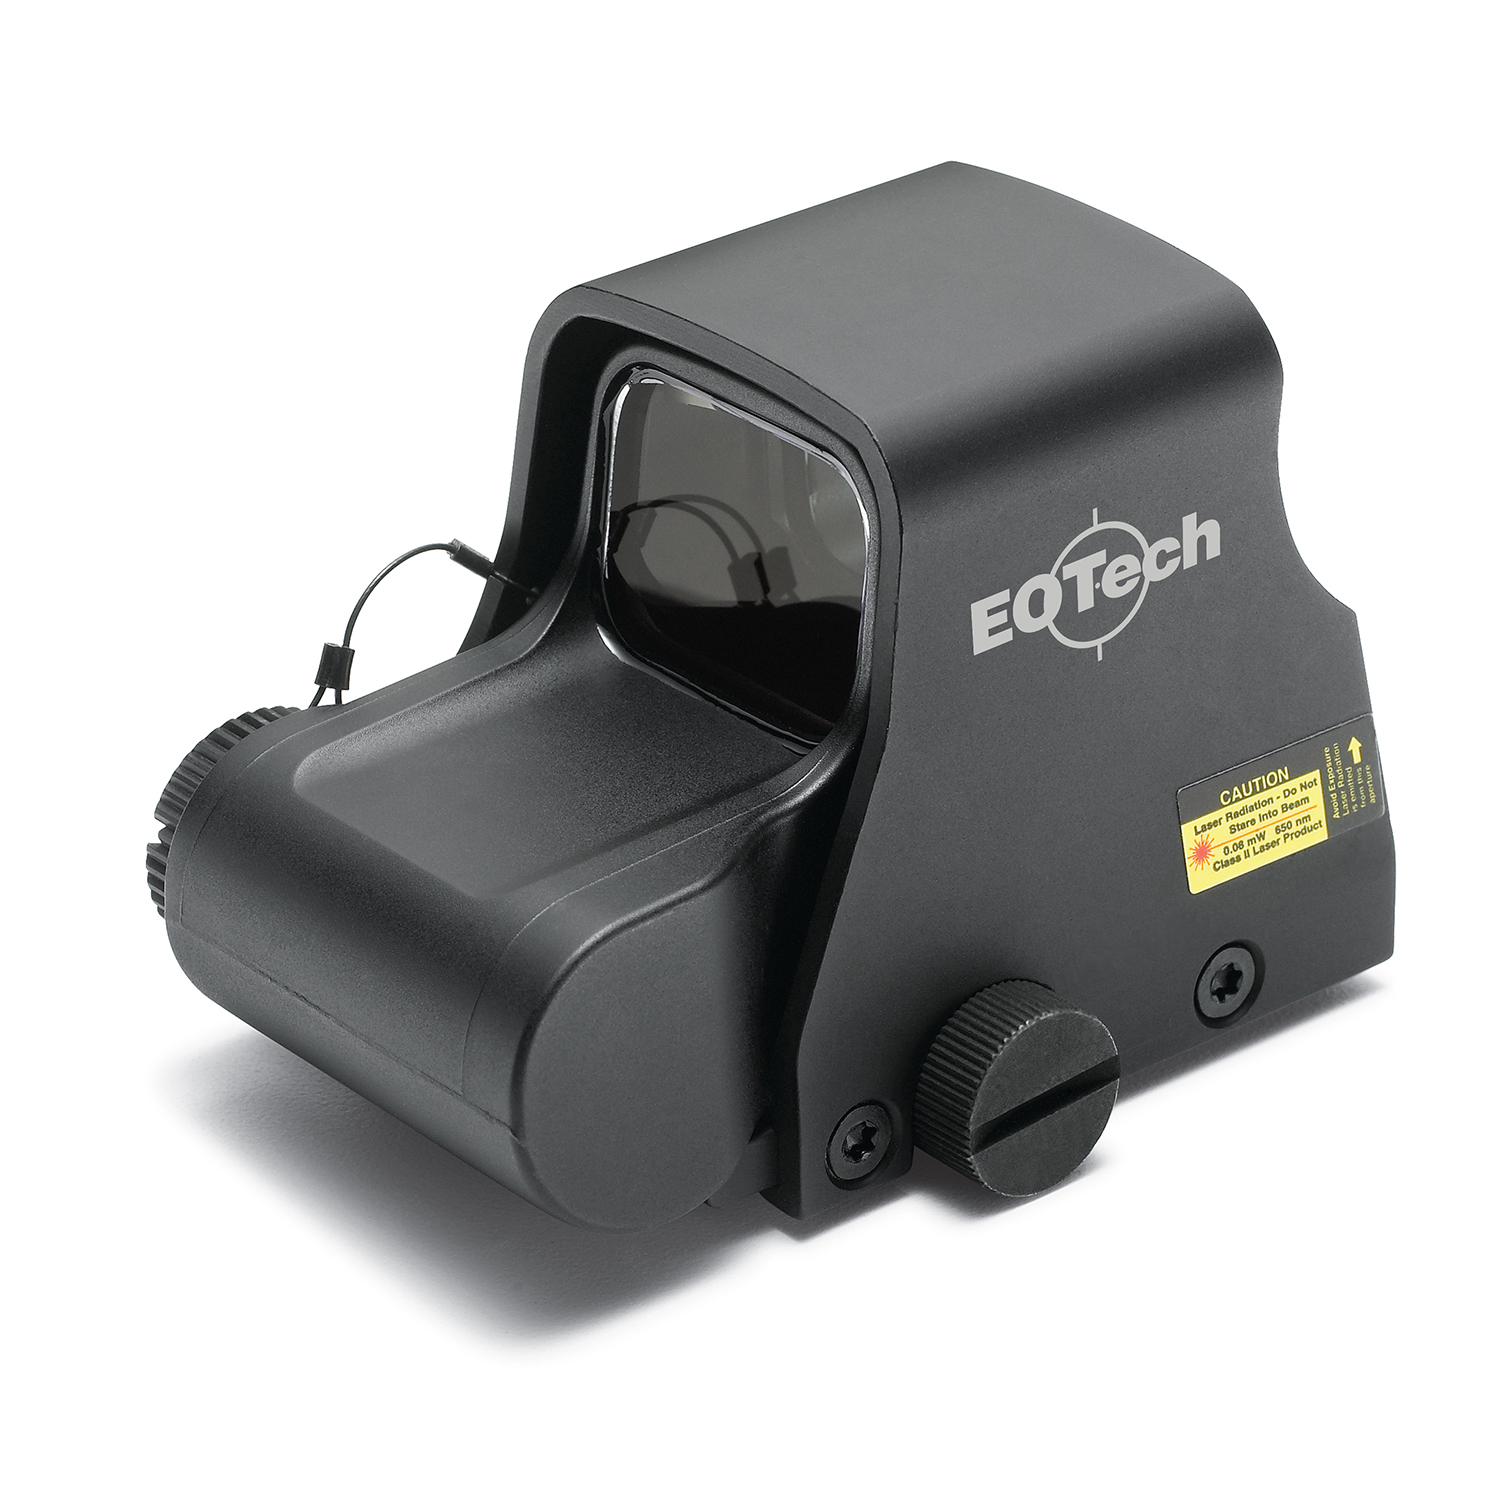 EoTech XPS2-0 Holographic Weapon Sight by Eotech